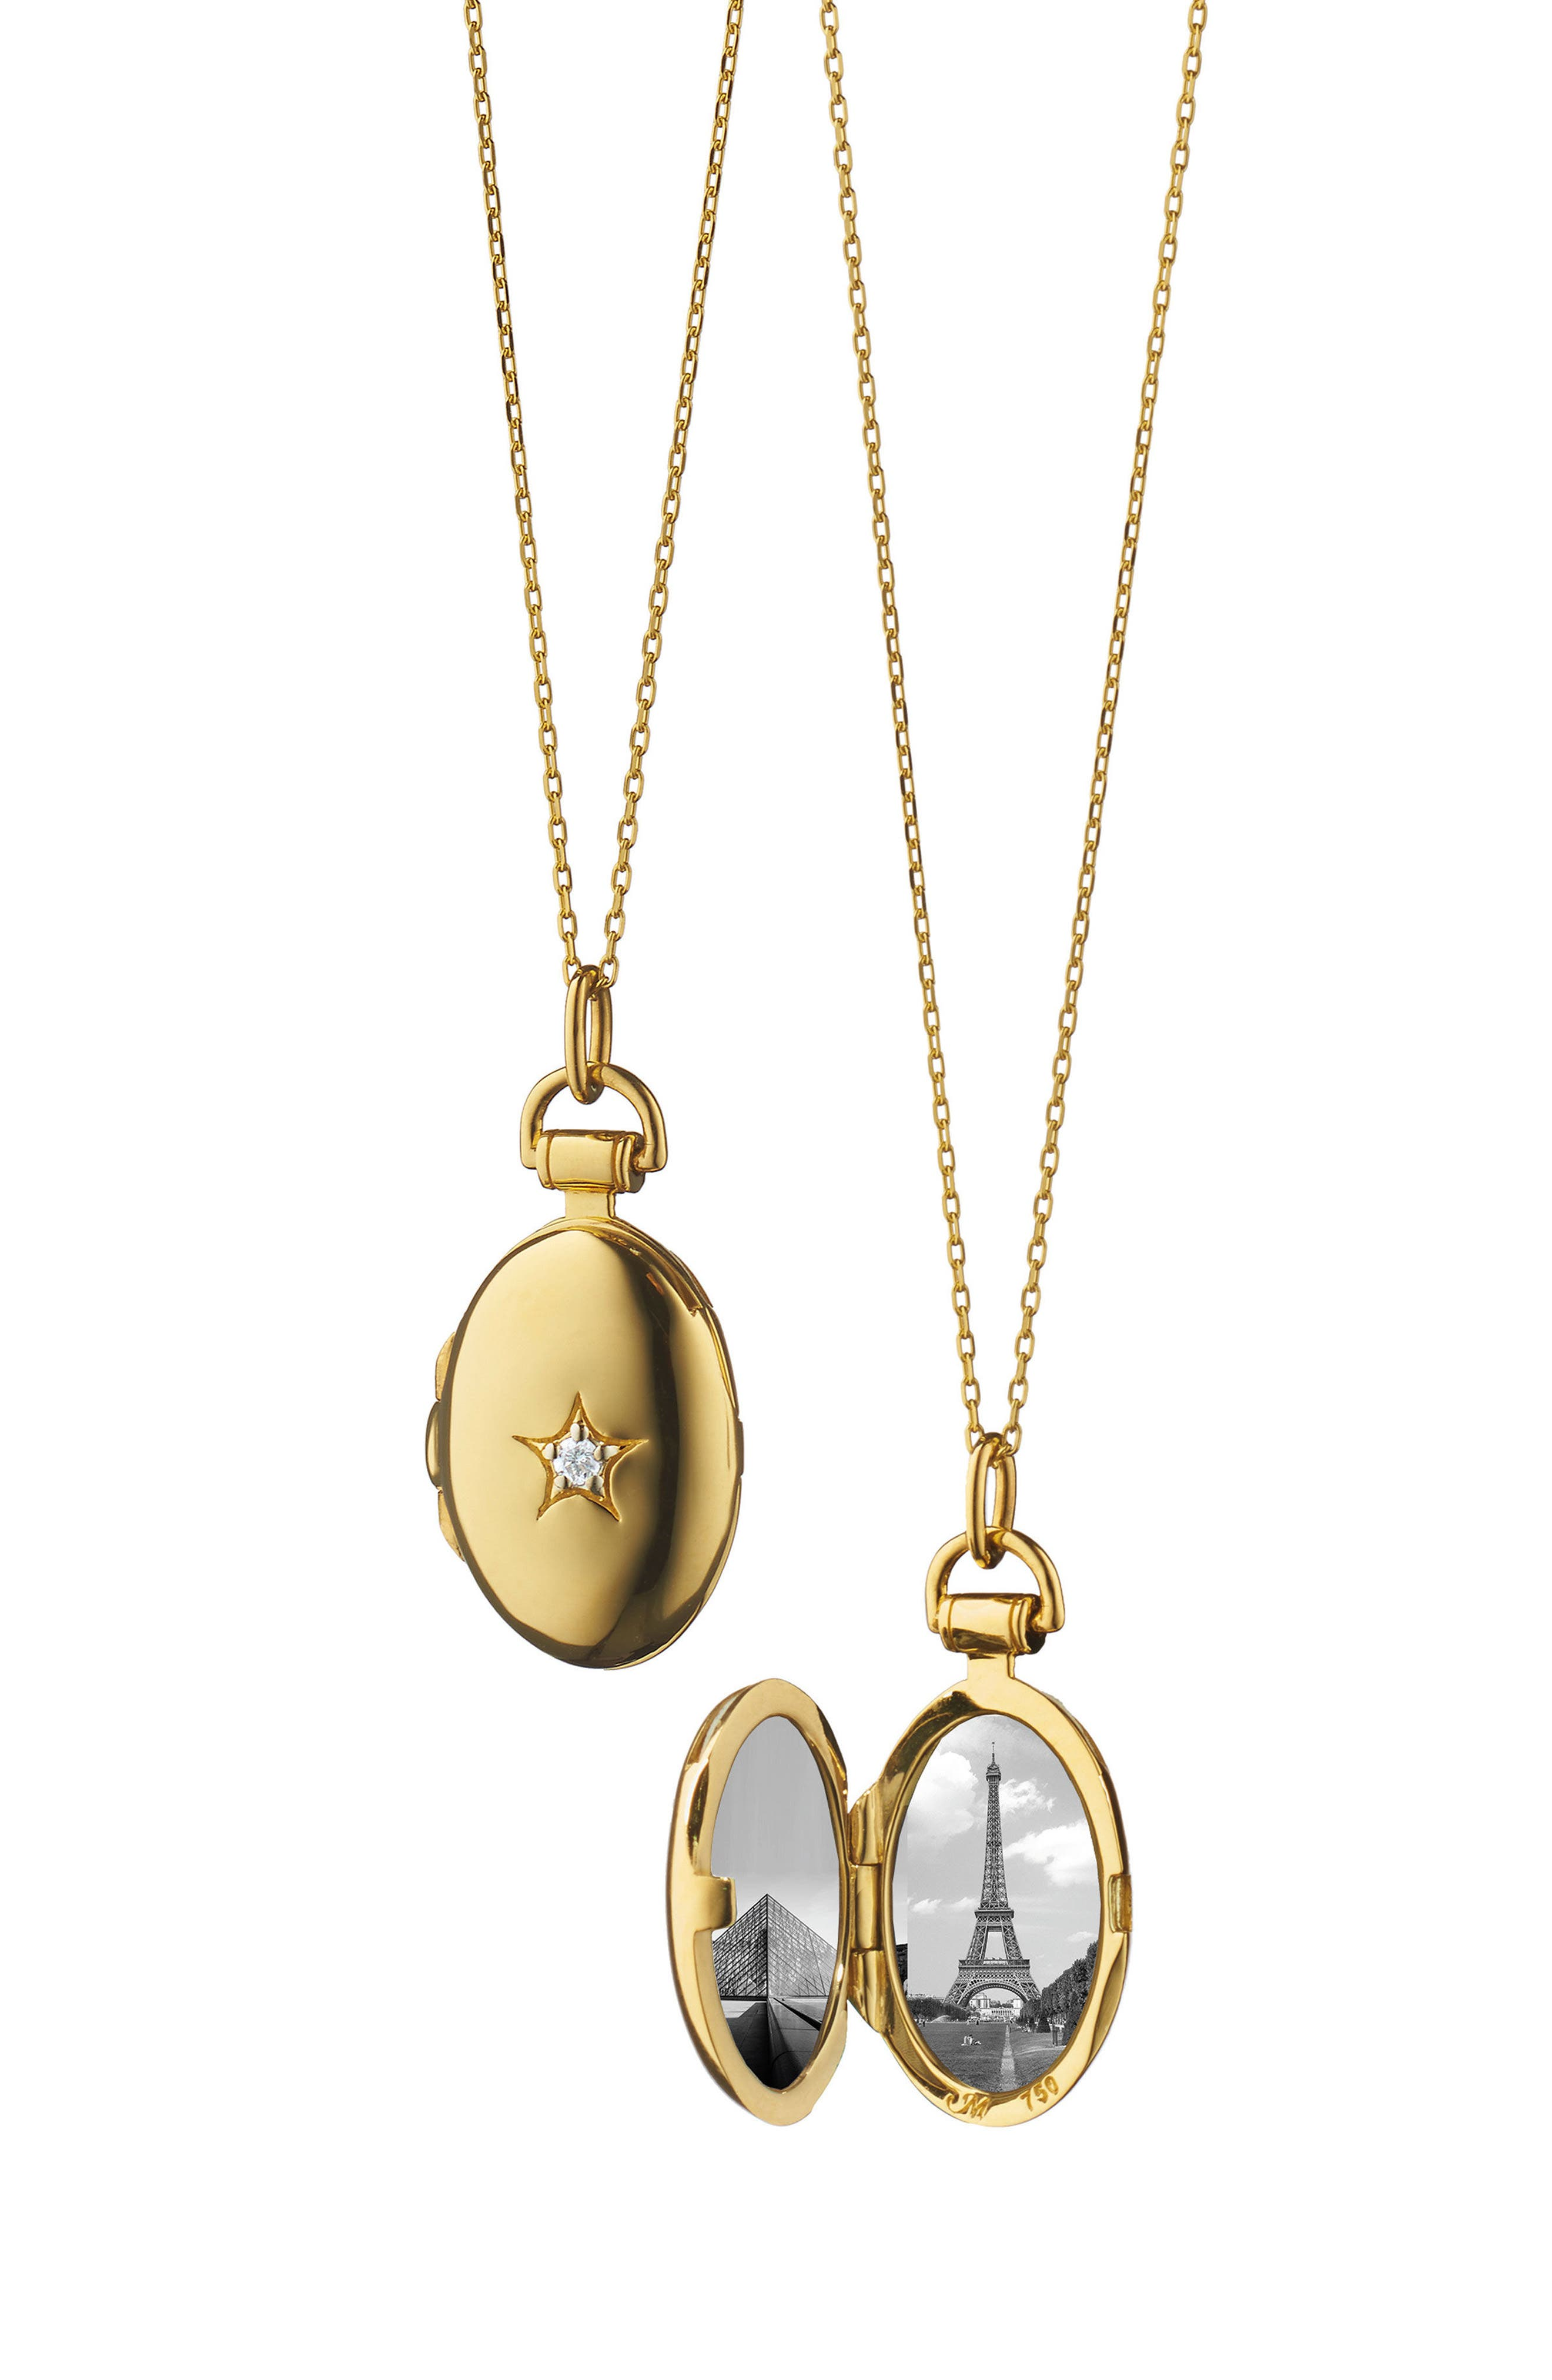 Petite Oval Gold Locket Necklace,                             Main thumbnail 1, color,                             18K YELLOW GOLD